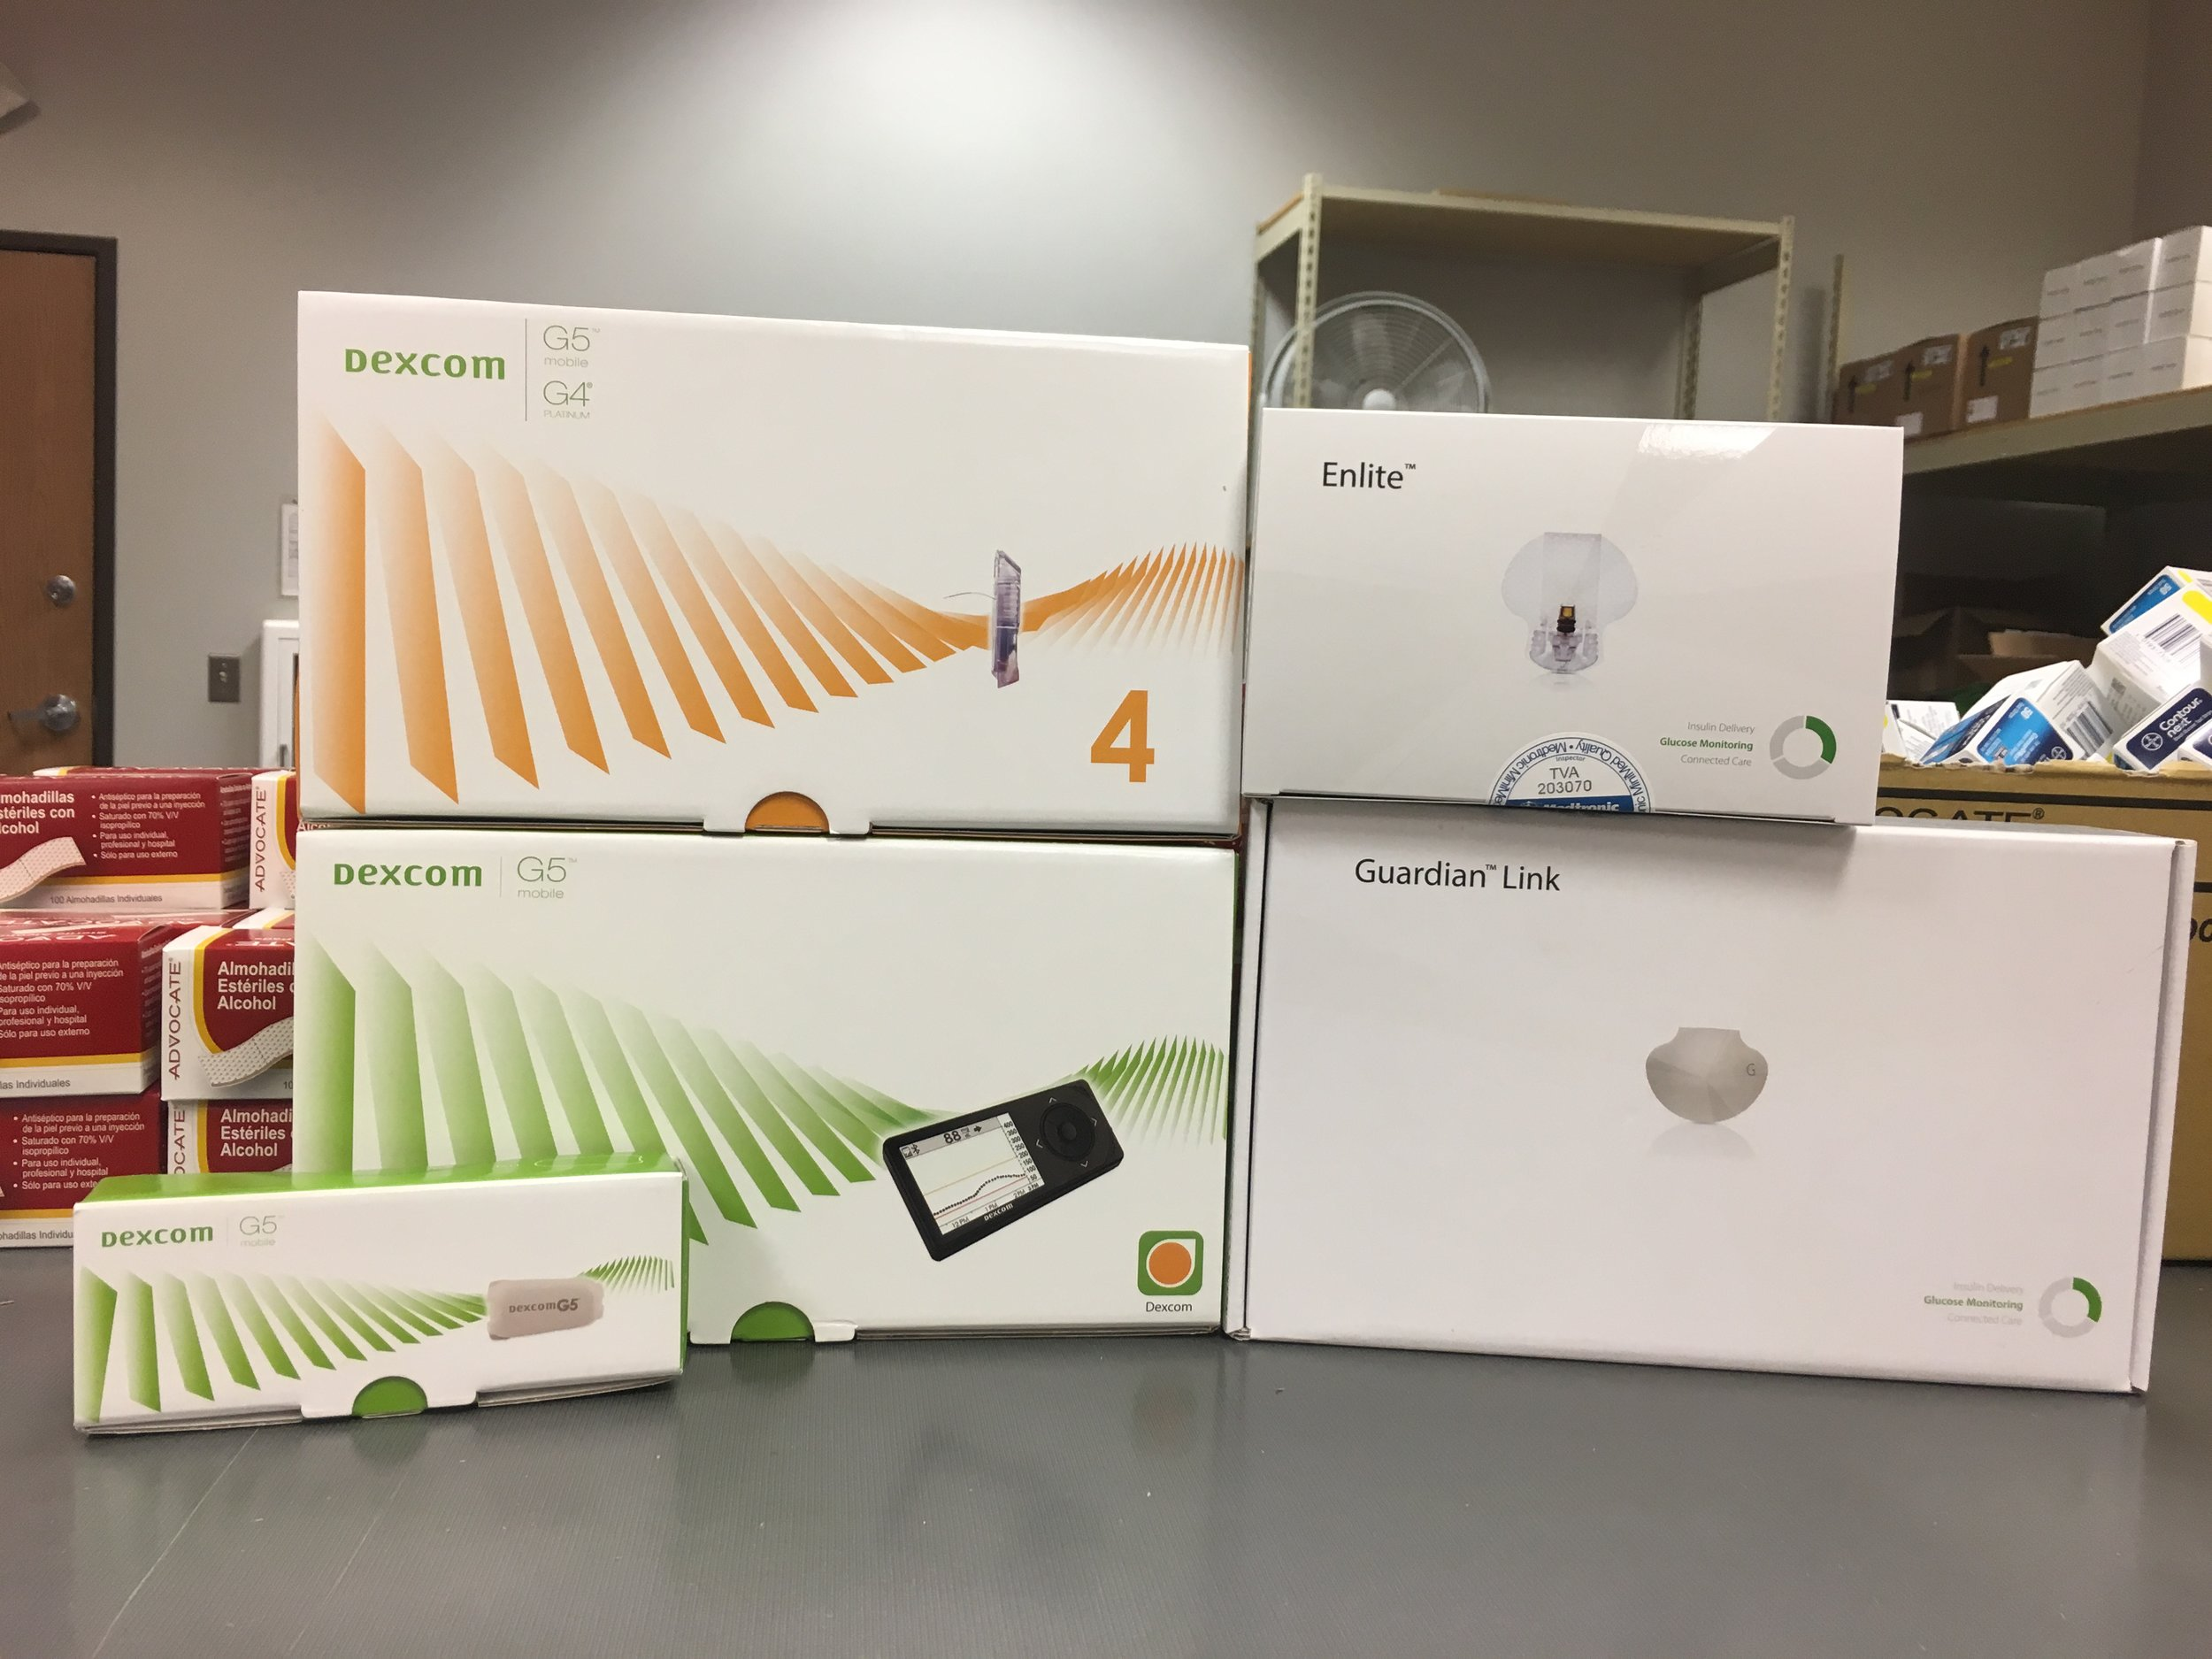 Dexcom & Medtronic CGM Systems (Photo by Emily Lewis)